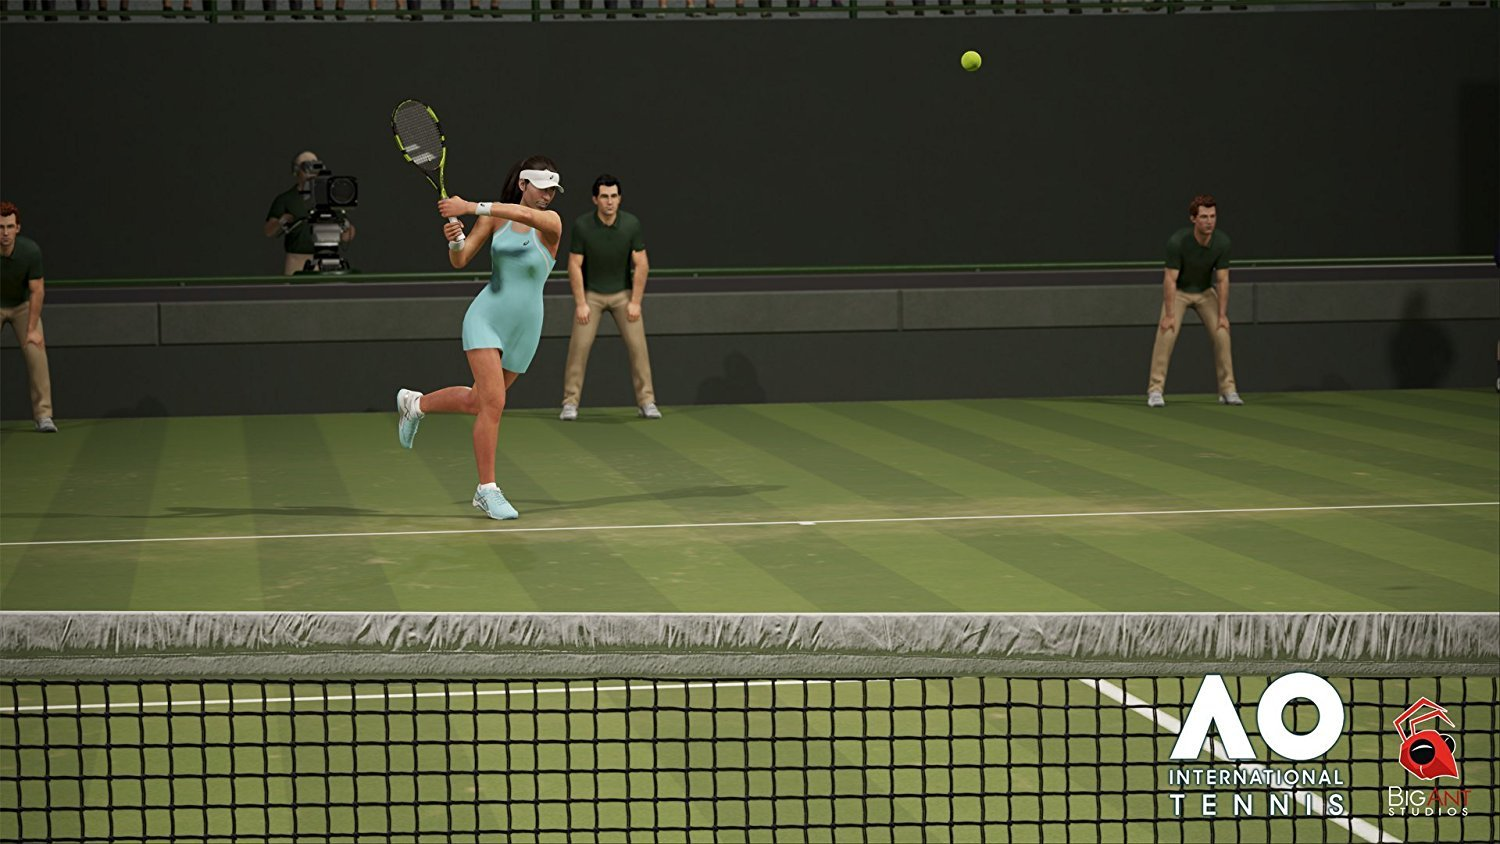 AO International Tennis (Xbox One) by Big Ant Studios (Image #3)